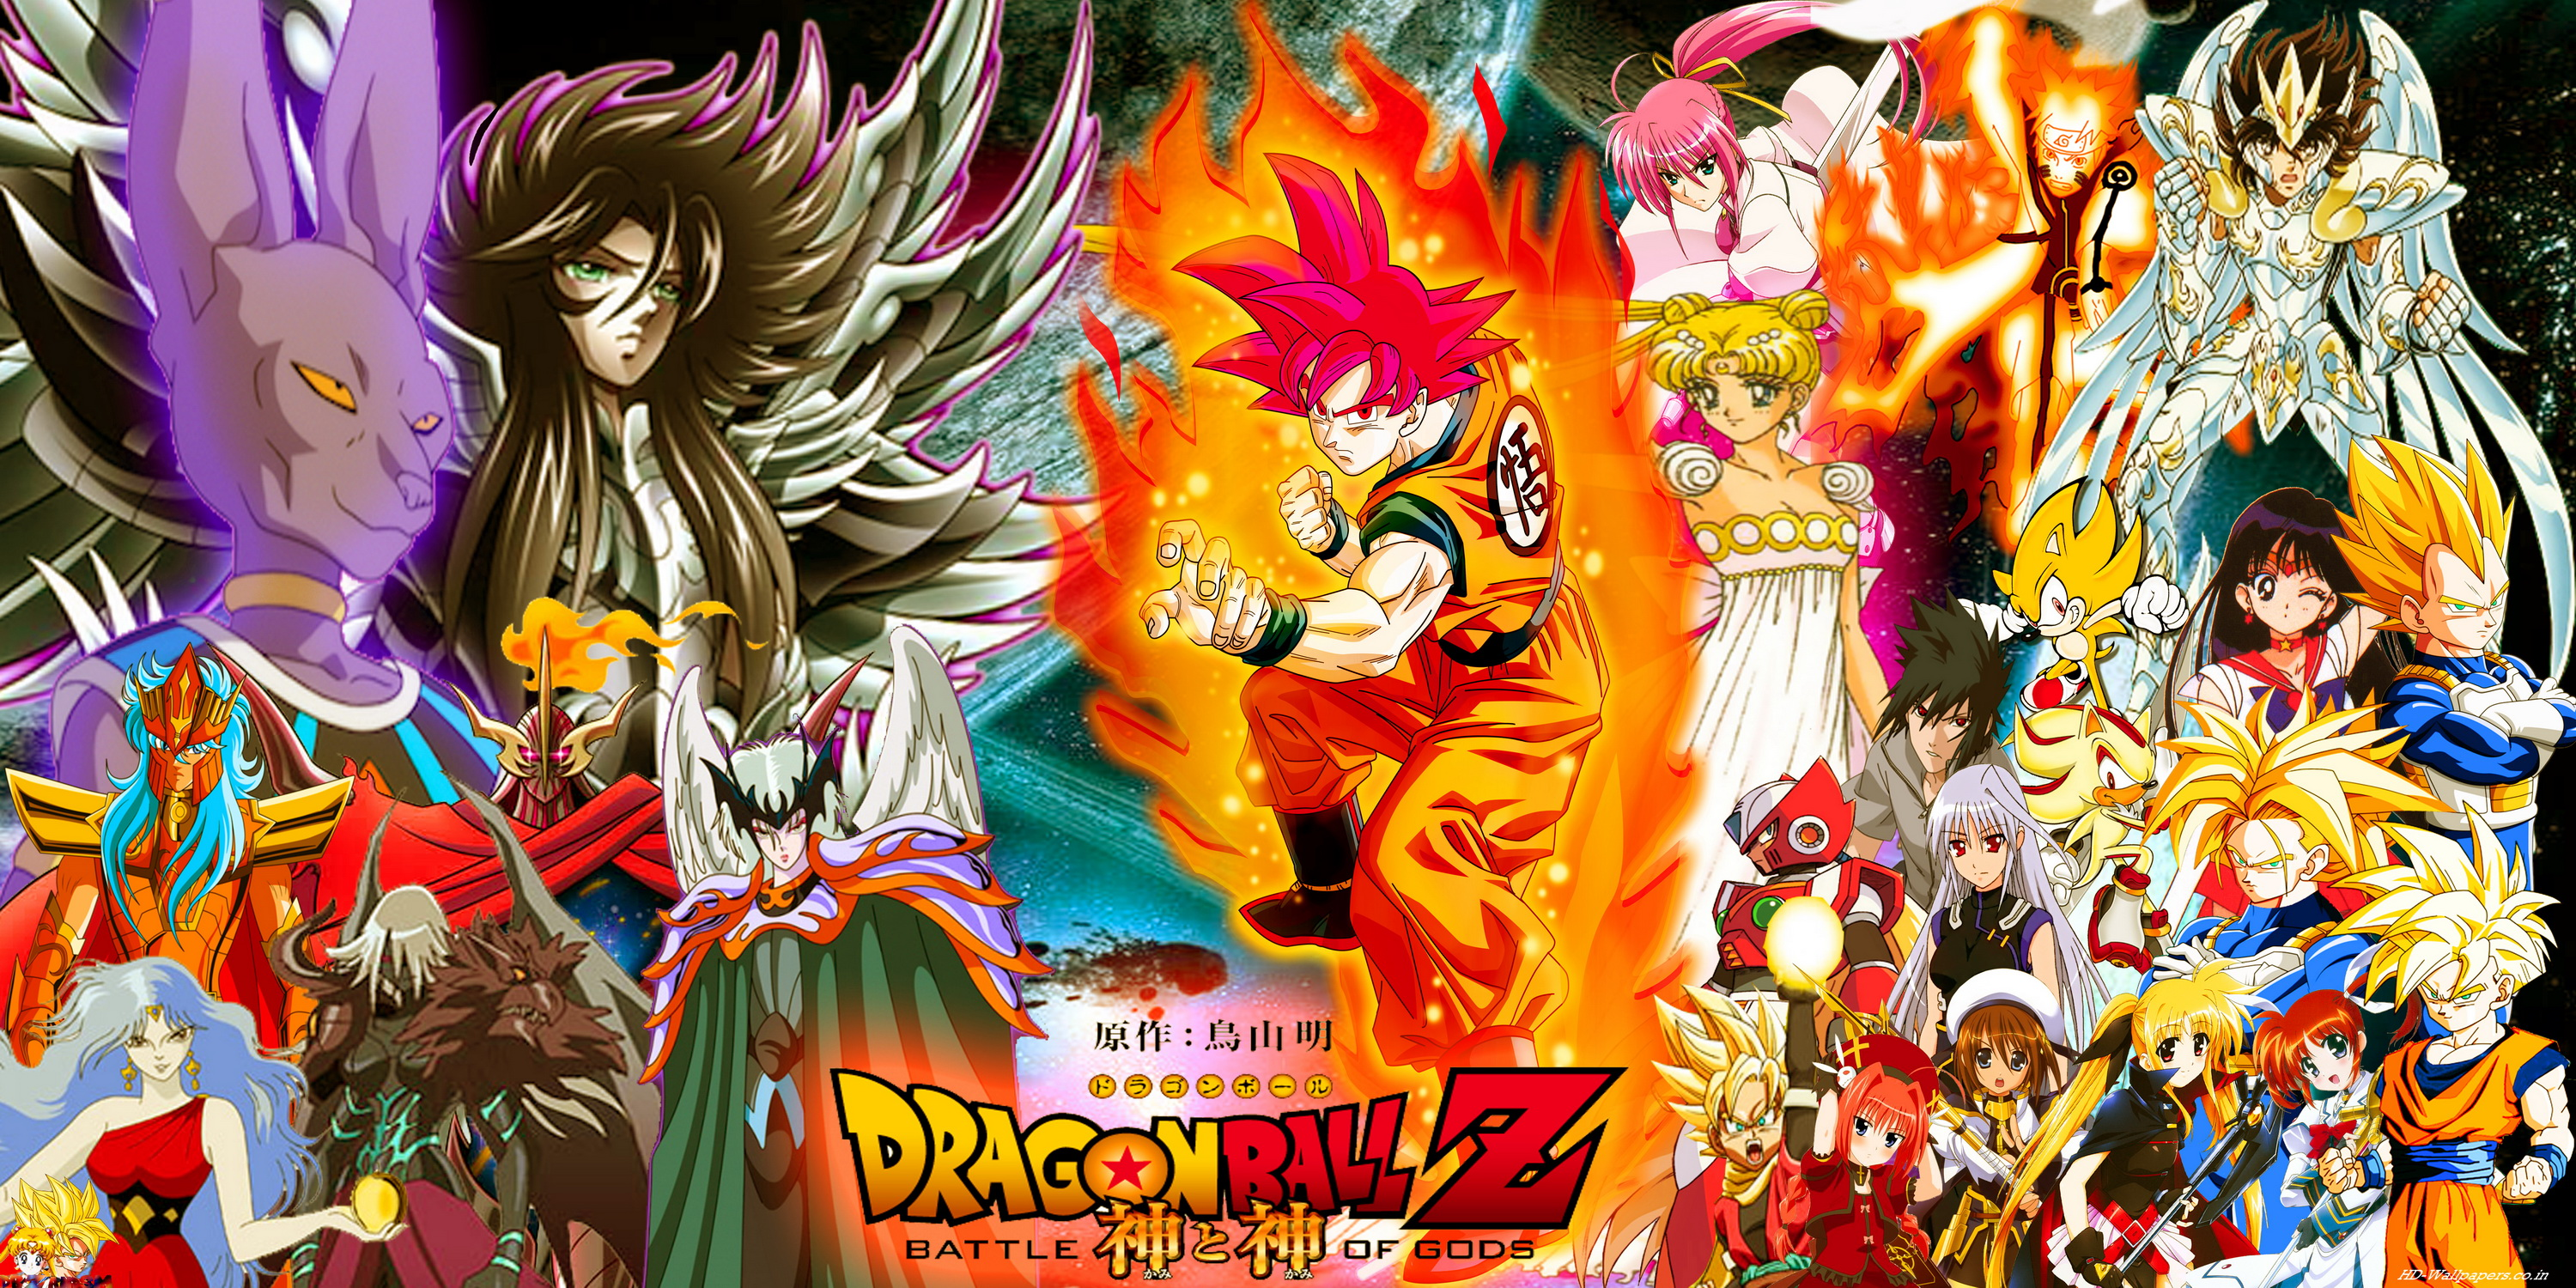 Dragon Ball Z Wallpapers Pictures Images 3000x1500